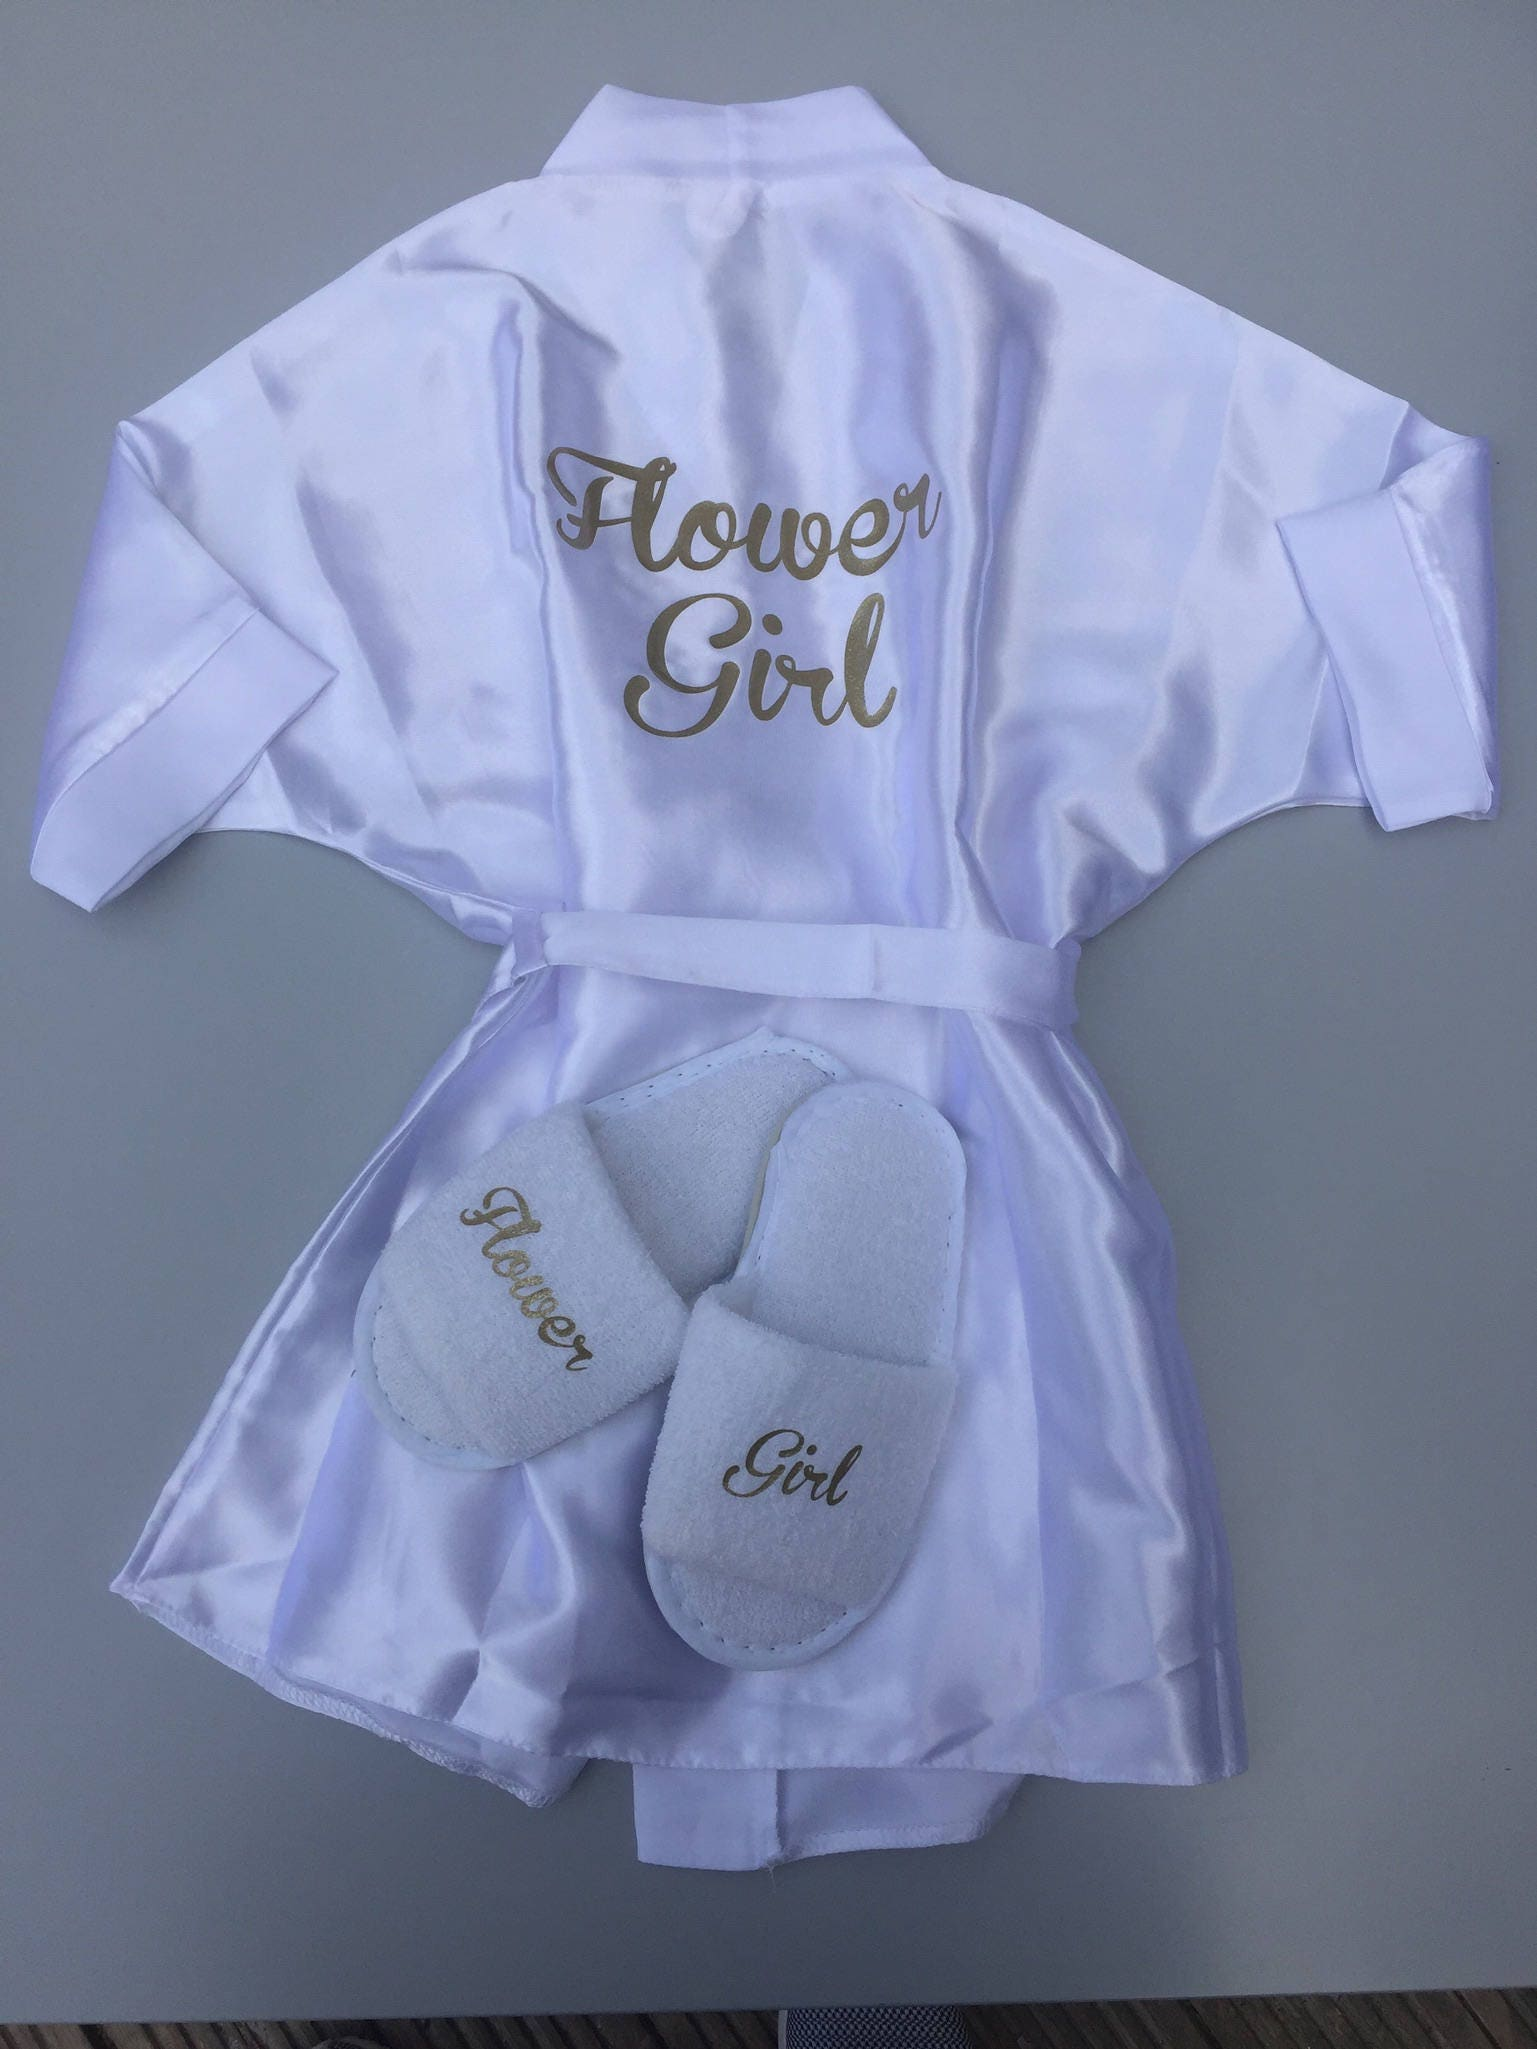 Flower girl robe  flower girl slippers  will you be my flower girl  bridesmaid robe bridesmaid slippers will you be my bridesmaid